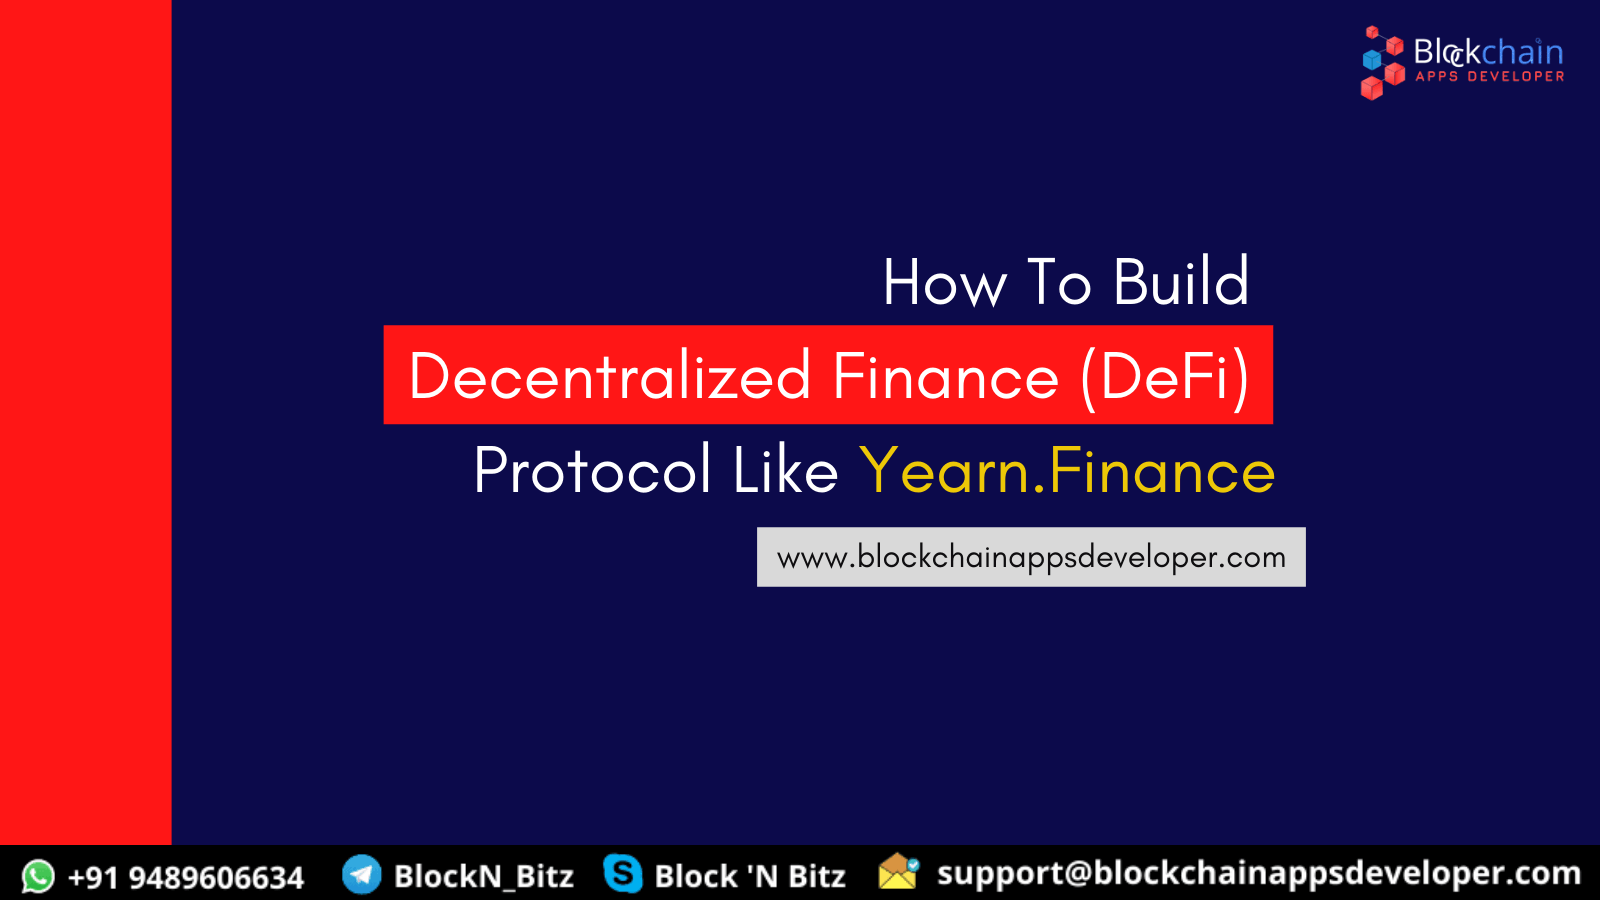 How to Build Decentralized Finance (DeFi) Protocol Product Like Yearn.finance?